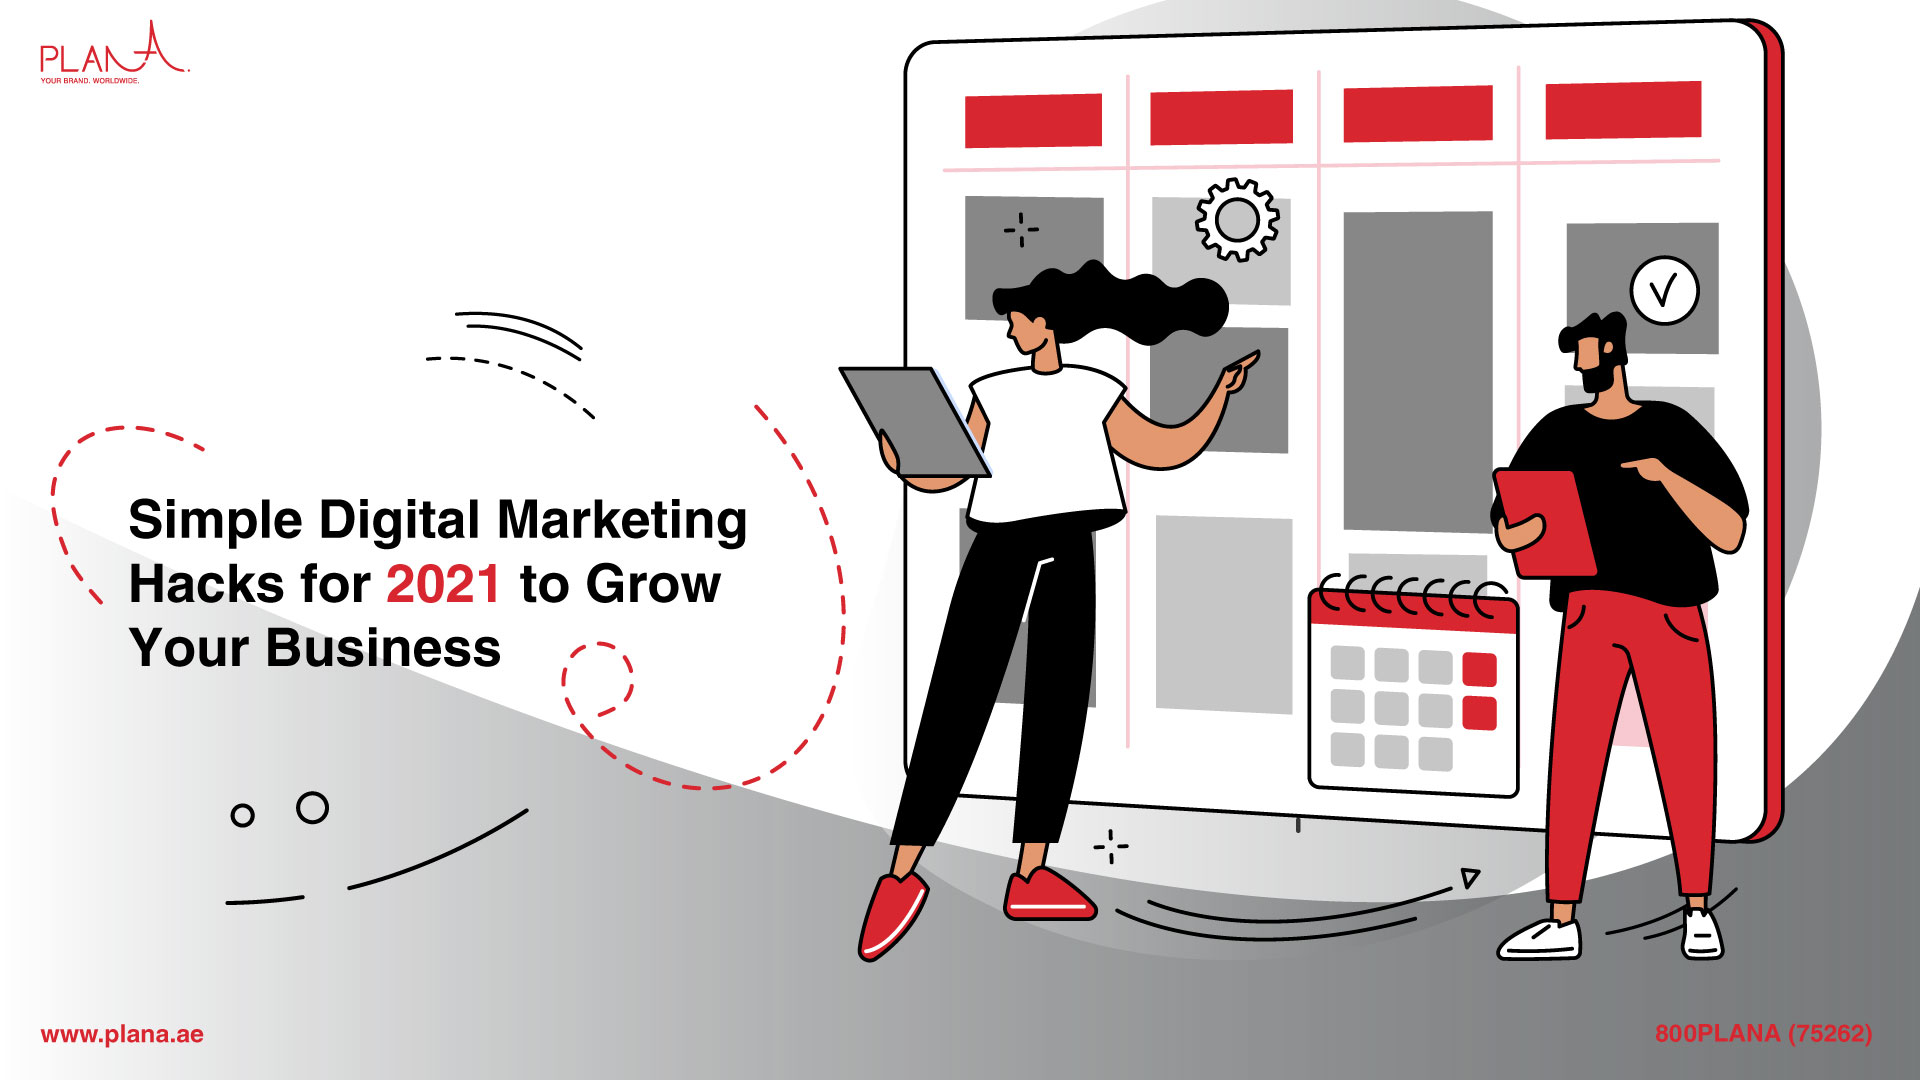 Simple Digital Marketing Hacks for 2021 to Grow Your Business